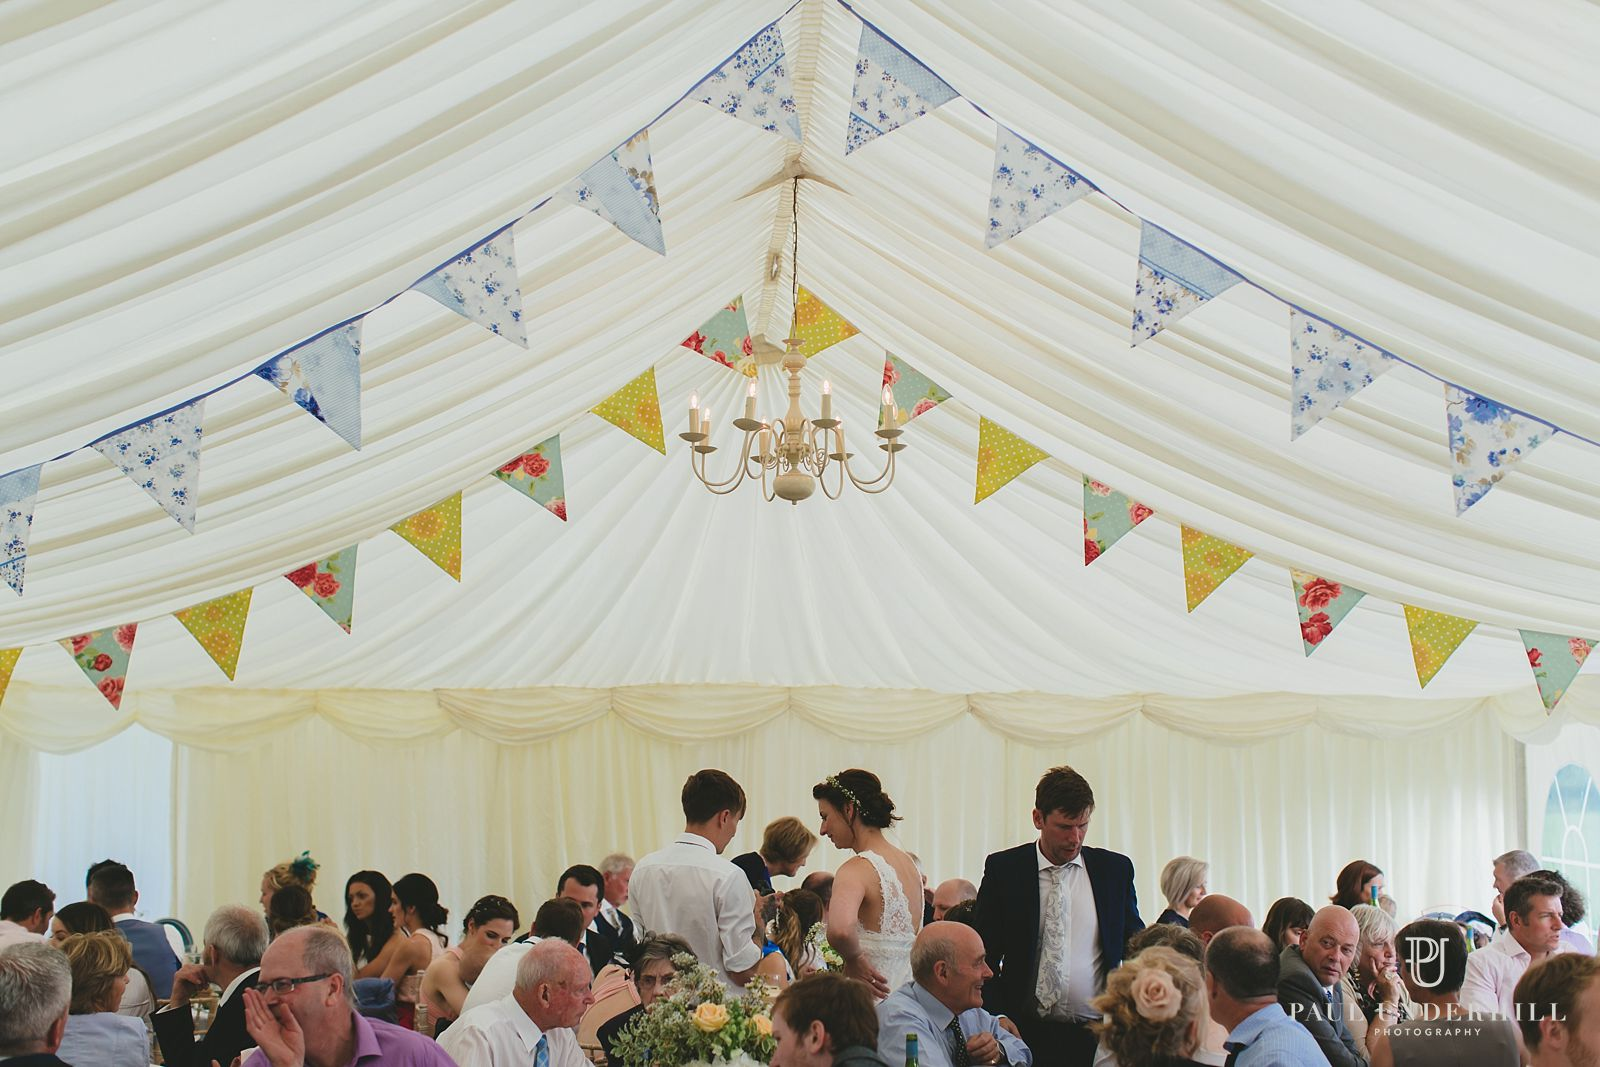 Dorset wedding marquee